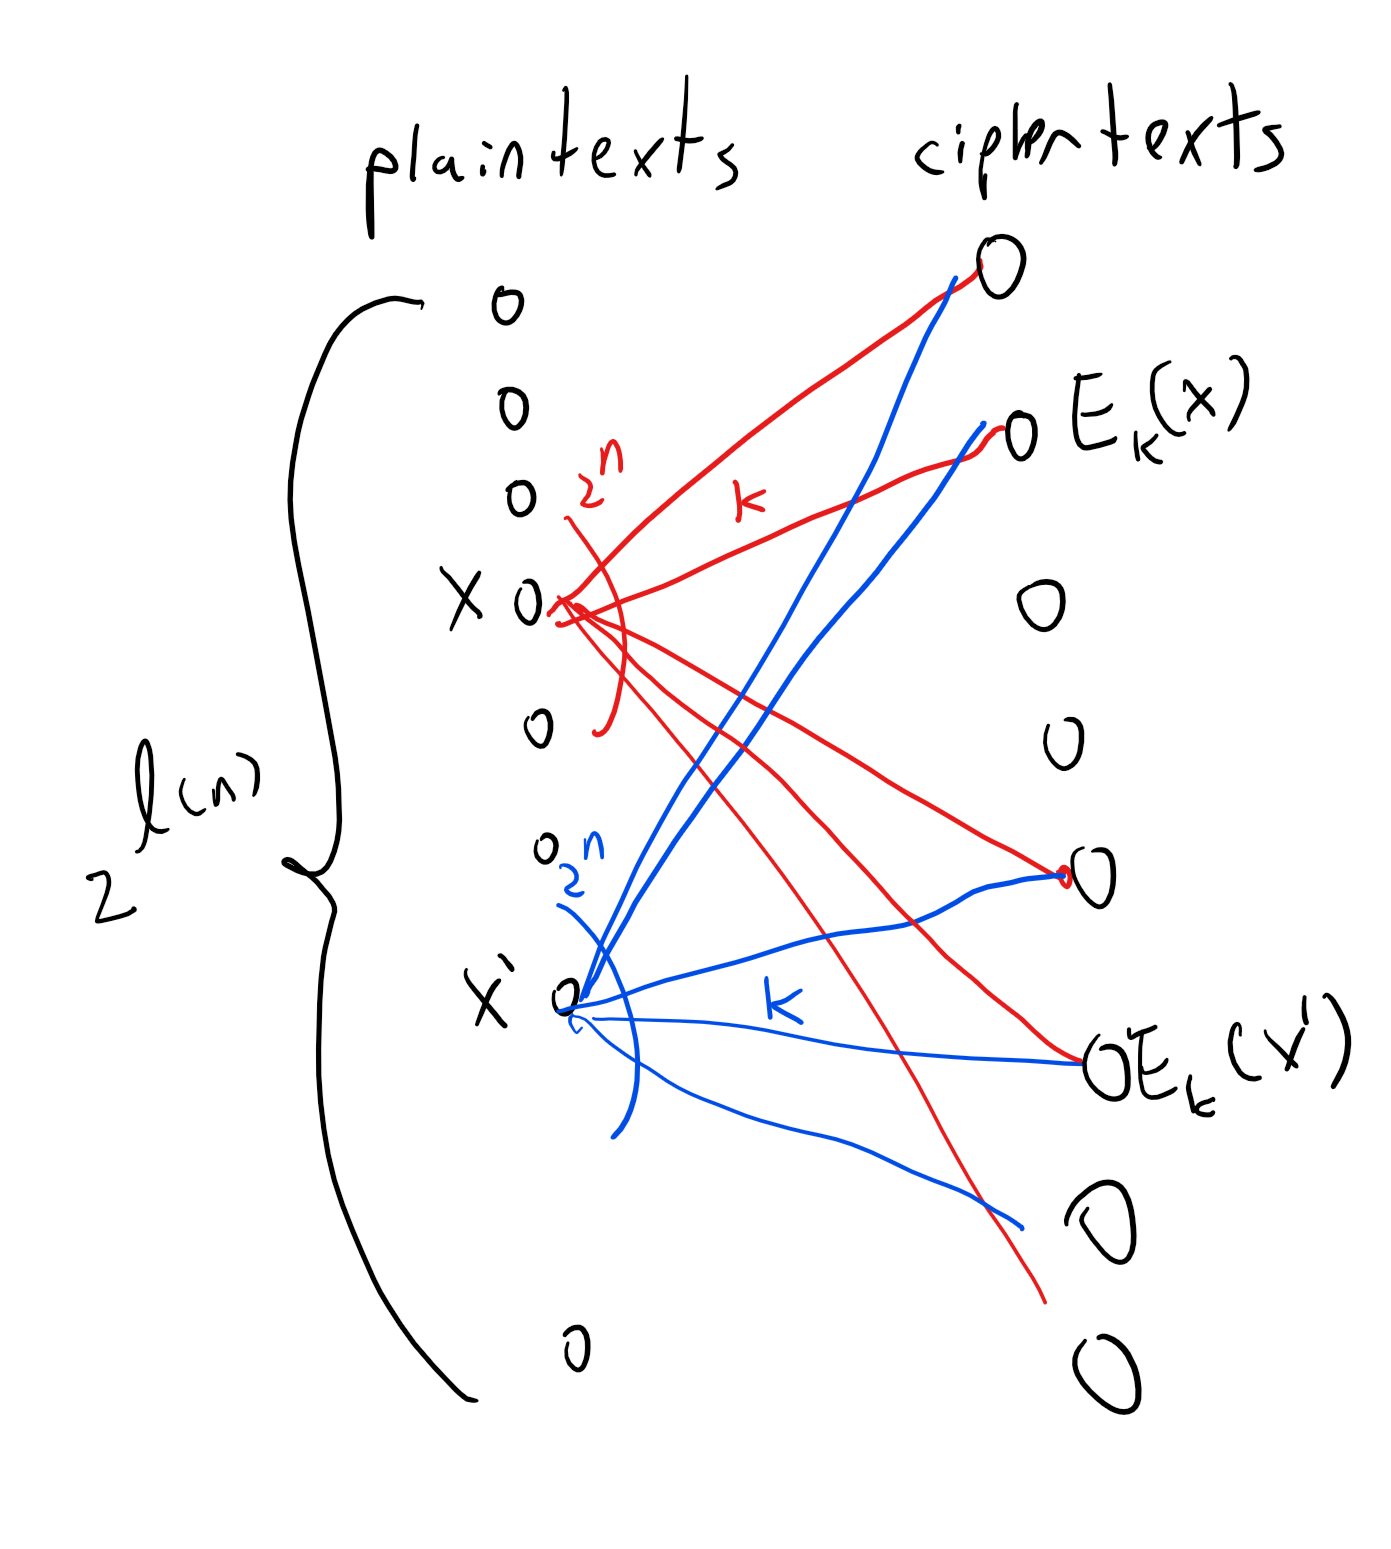 For any key length n, we can visualize an encryption scheme (E,D) as a graph with a vertex for every one of the 2^{L(n)} possible plaintexts and for every one of the ciphertexts in \{0,1\}^* of the form E_k(x) for k\in \{0,1\}^n and x\in \{0,1\}^{L(n)}. For every plaintext x and key k, we add an edge labeled k between x and E_k(x). By the validity condition, if we pick any fixed key k, the map x \mapsto E_k(x) must be one-to-one. The condition of perfect secrecy simply corresponds to requiring that every two plaintexts x and x' have exactly the same set of neighbors (or multi-set, if there are parallel edges).